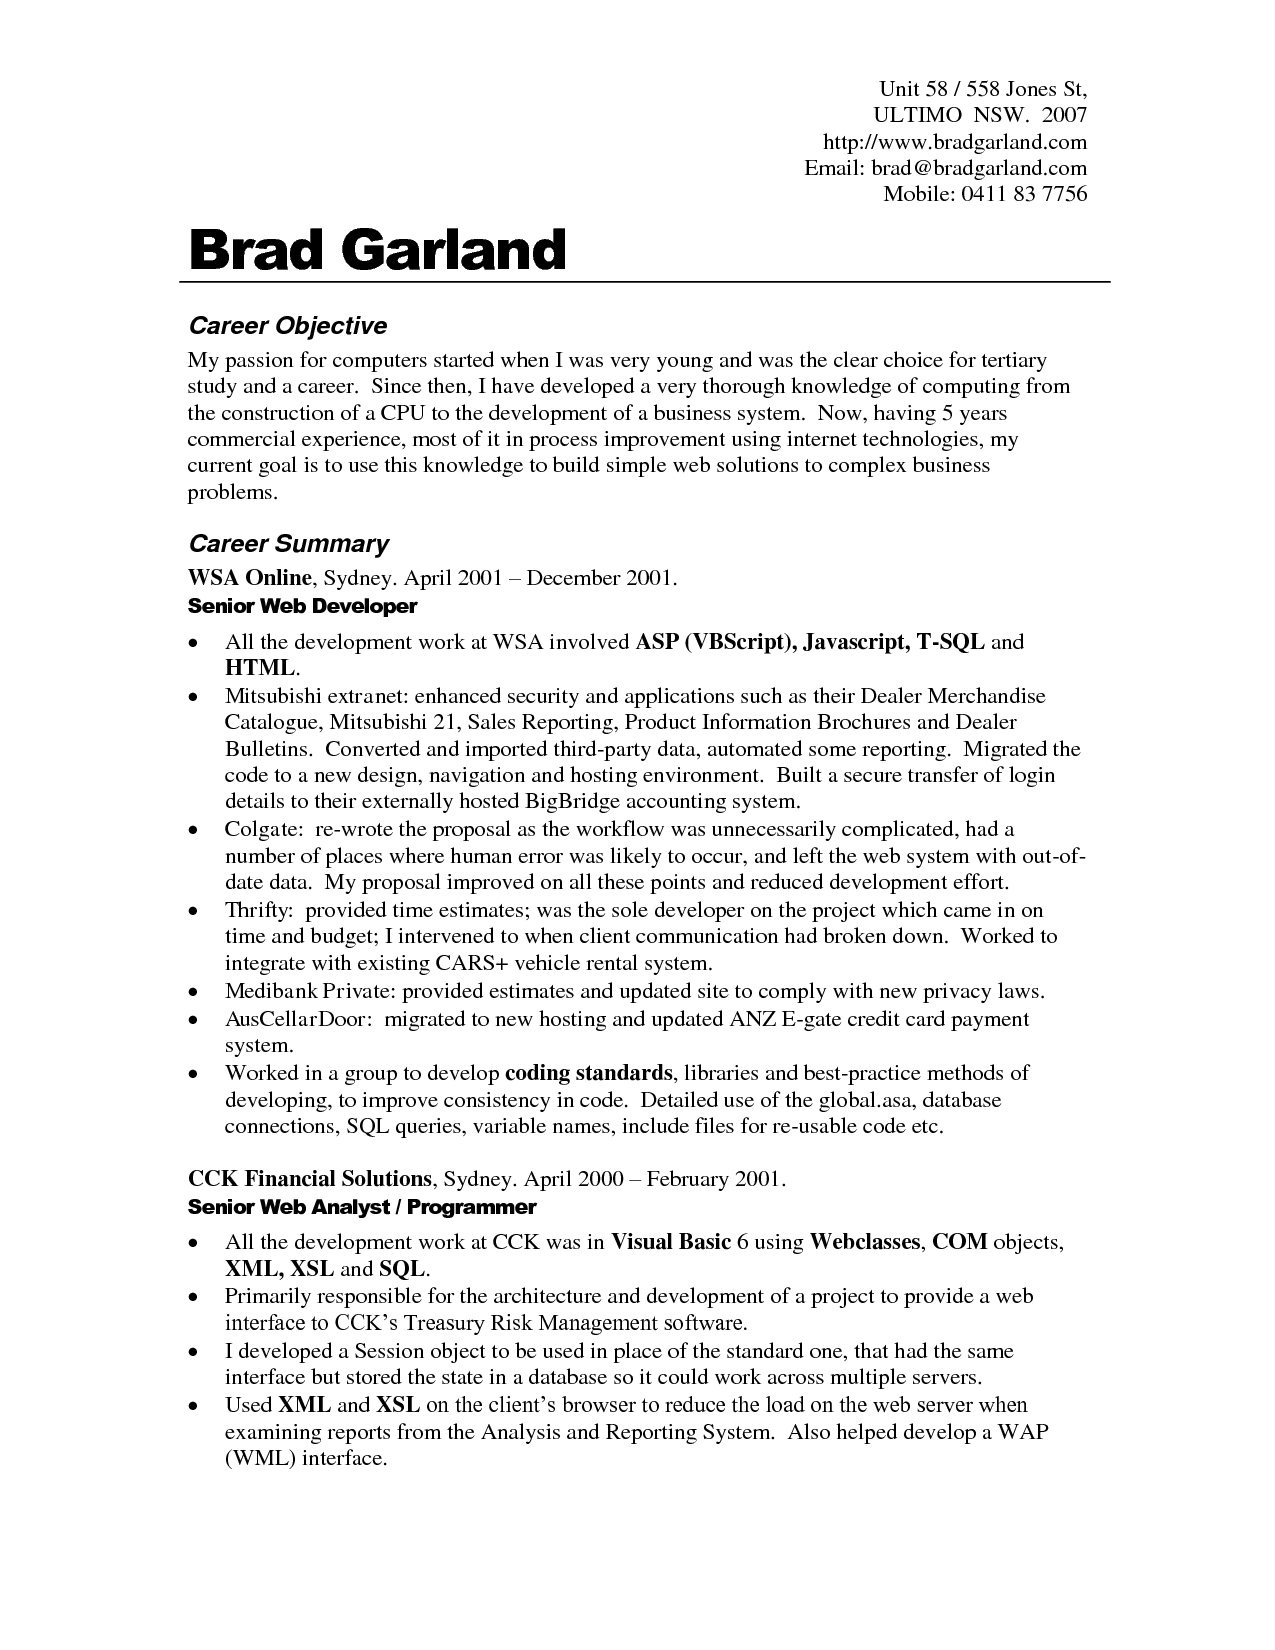 Resume Statement Examples Resume Objectives Examples Best Templateresume Objective Examples